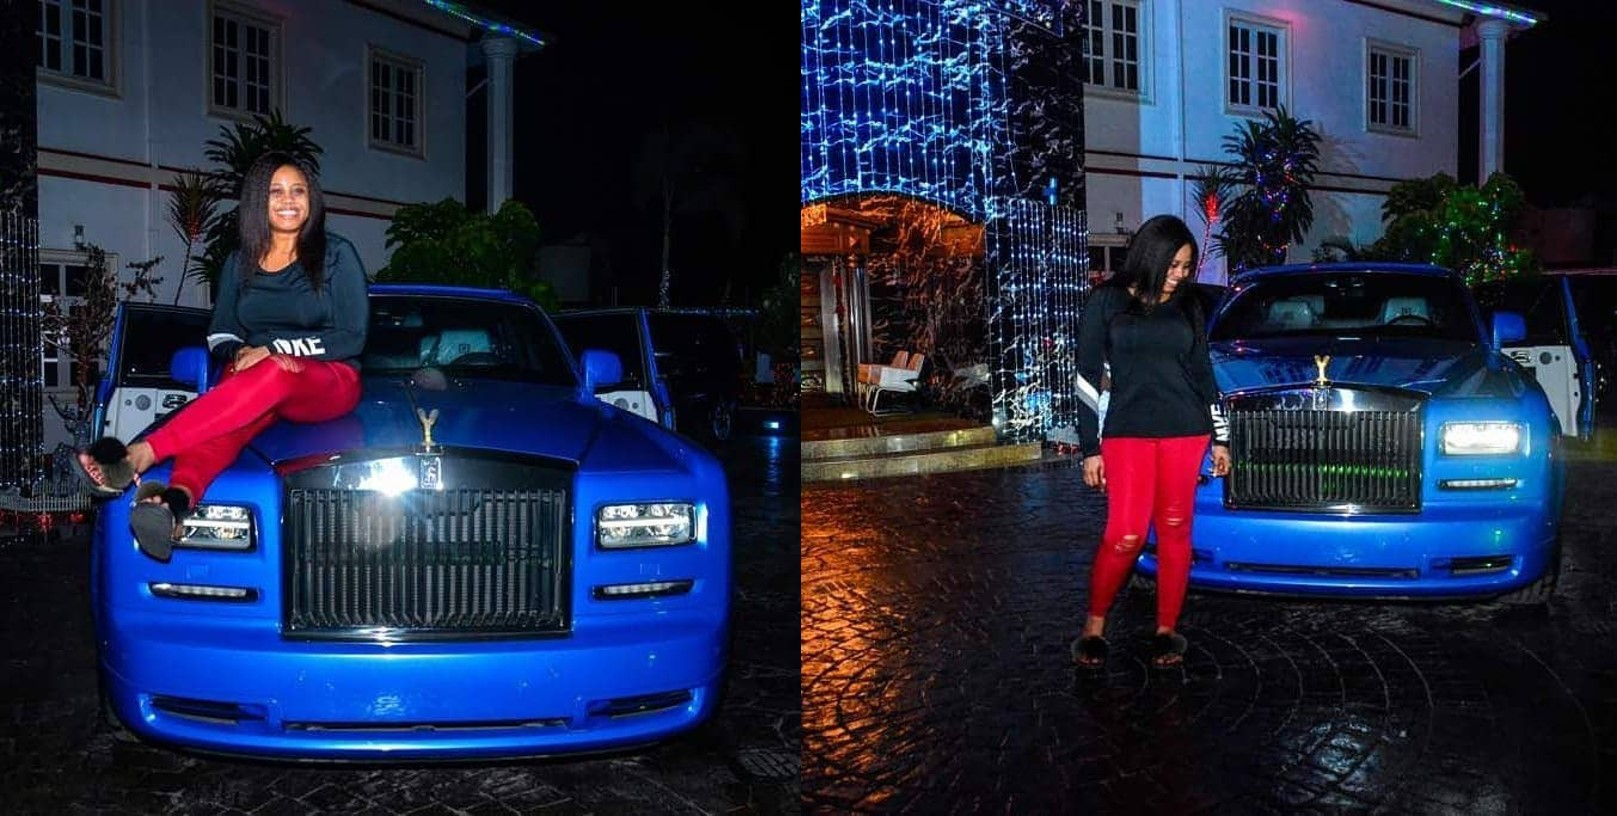 Photos of brand new Rolls Royce Phantom E-money bought for his wife as 2018 Christmas gift